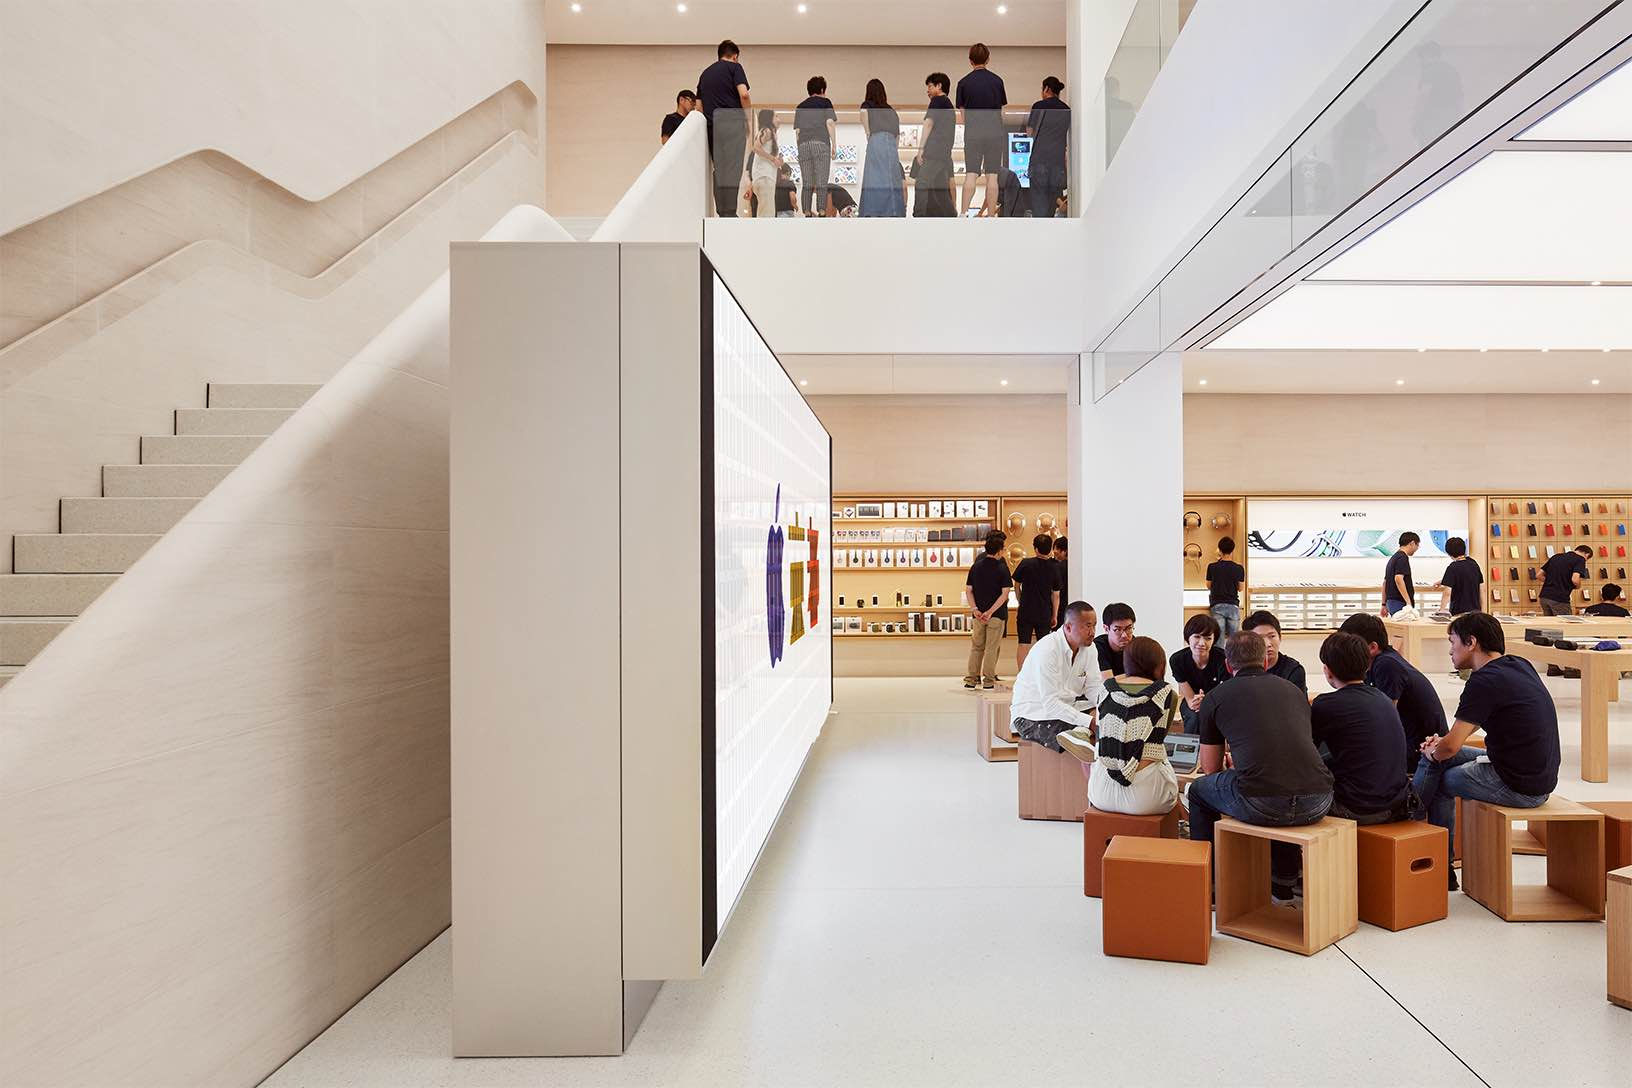 The Kyoto store, opening this coming Saturday, features a multi-level atrium